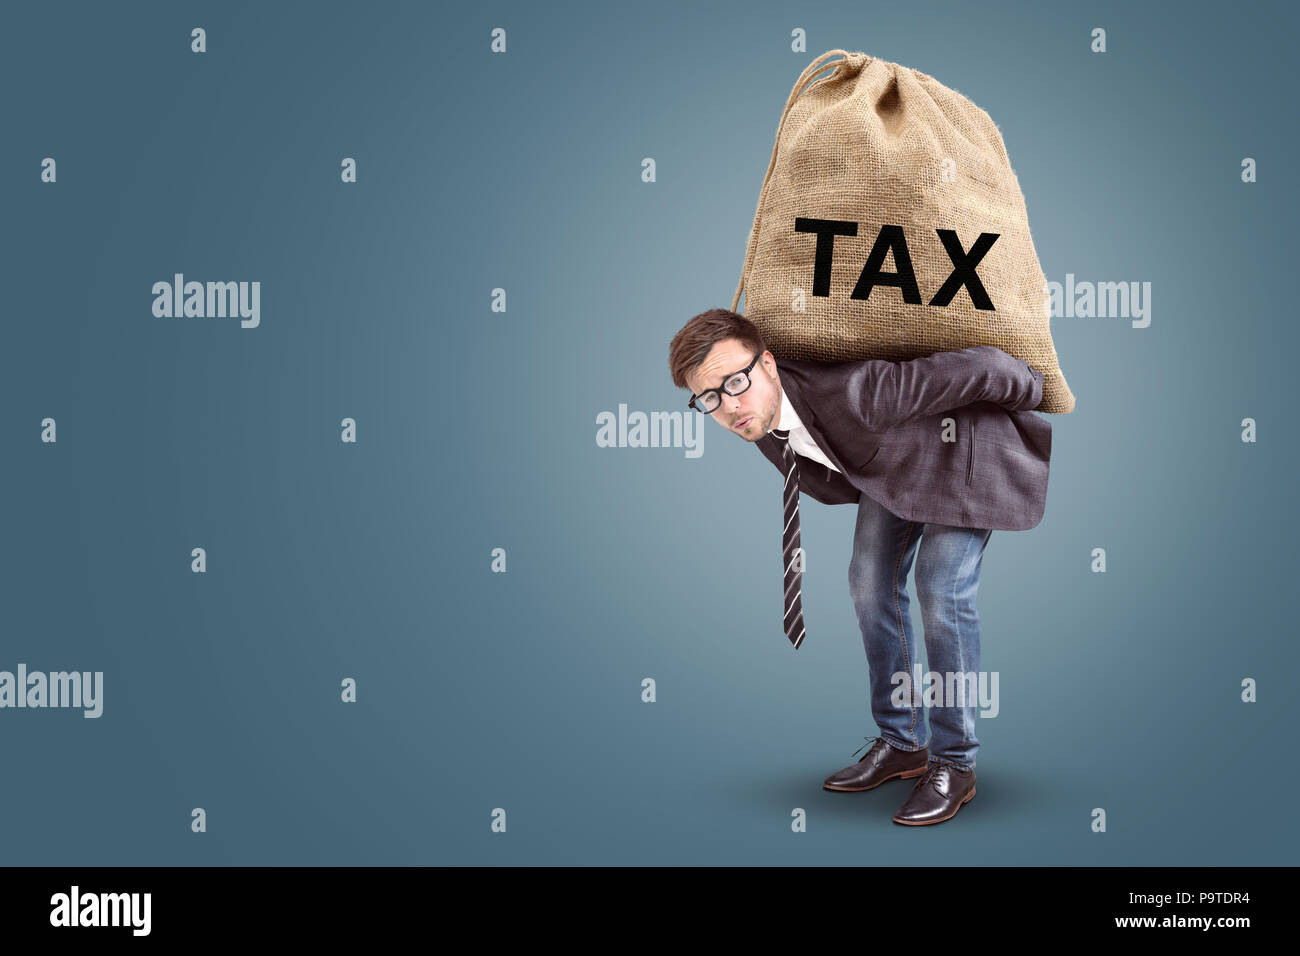 Tax burden concept with copy space - Stock Image